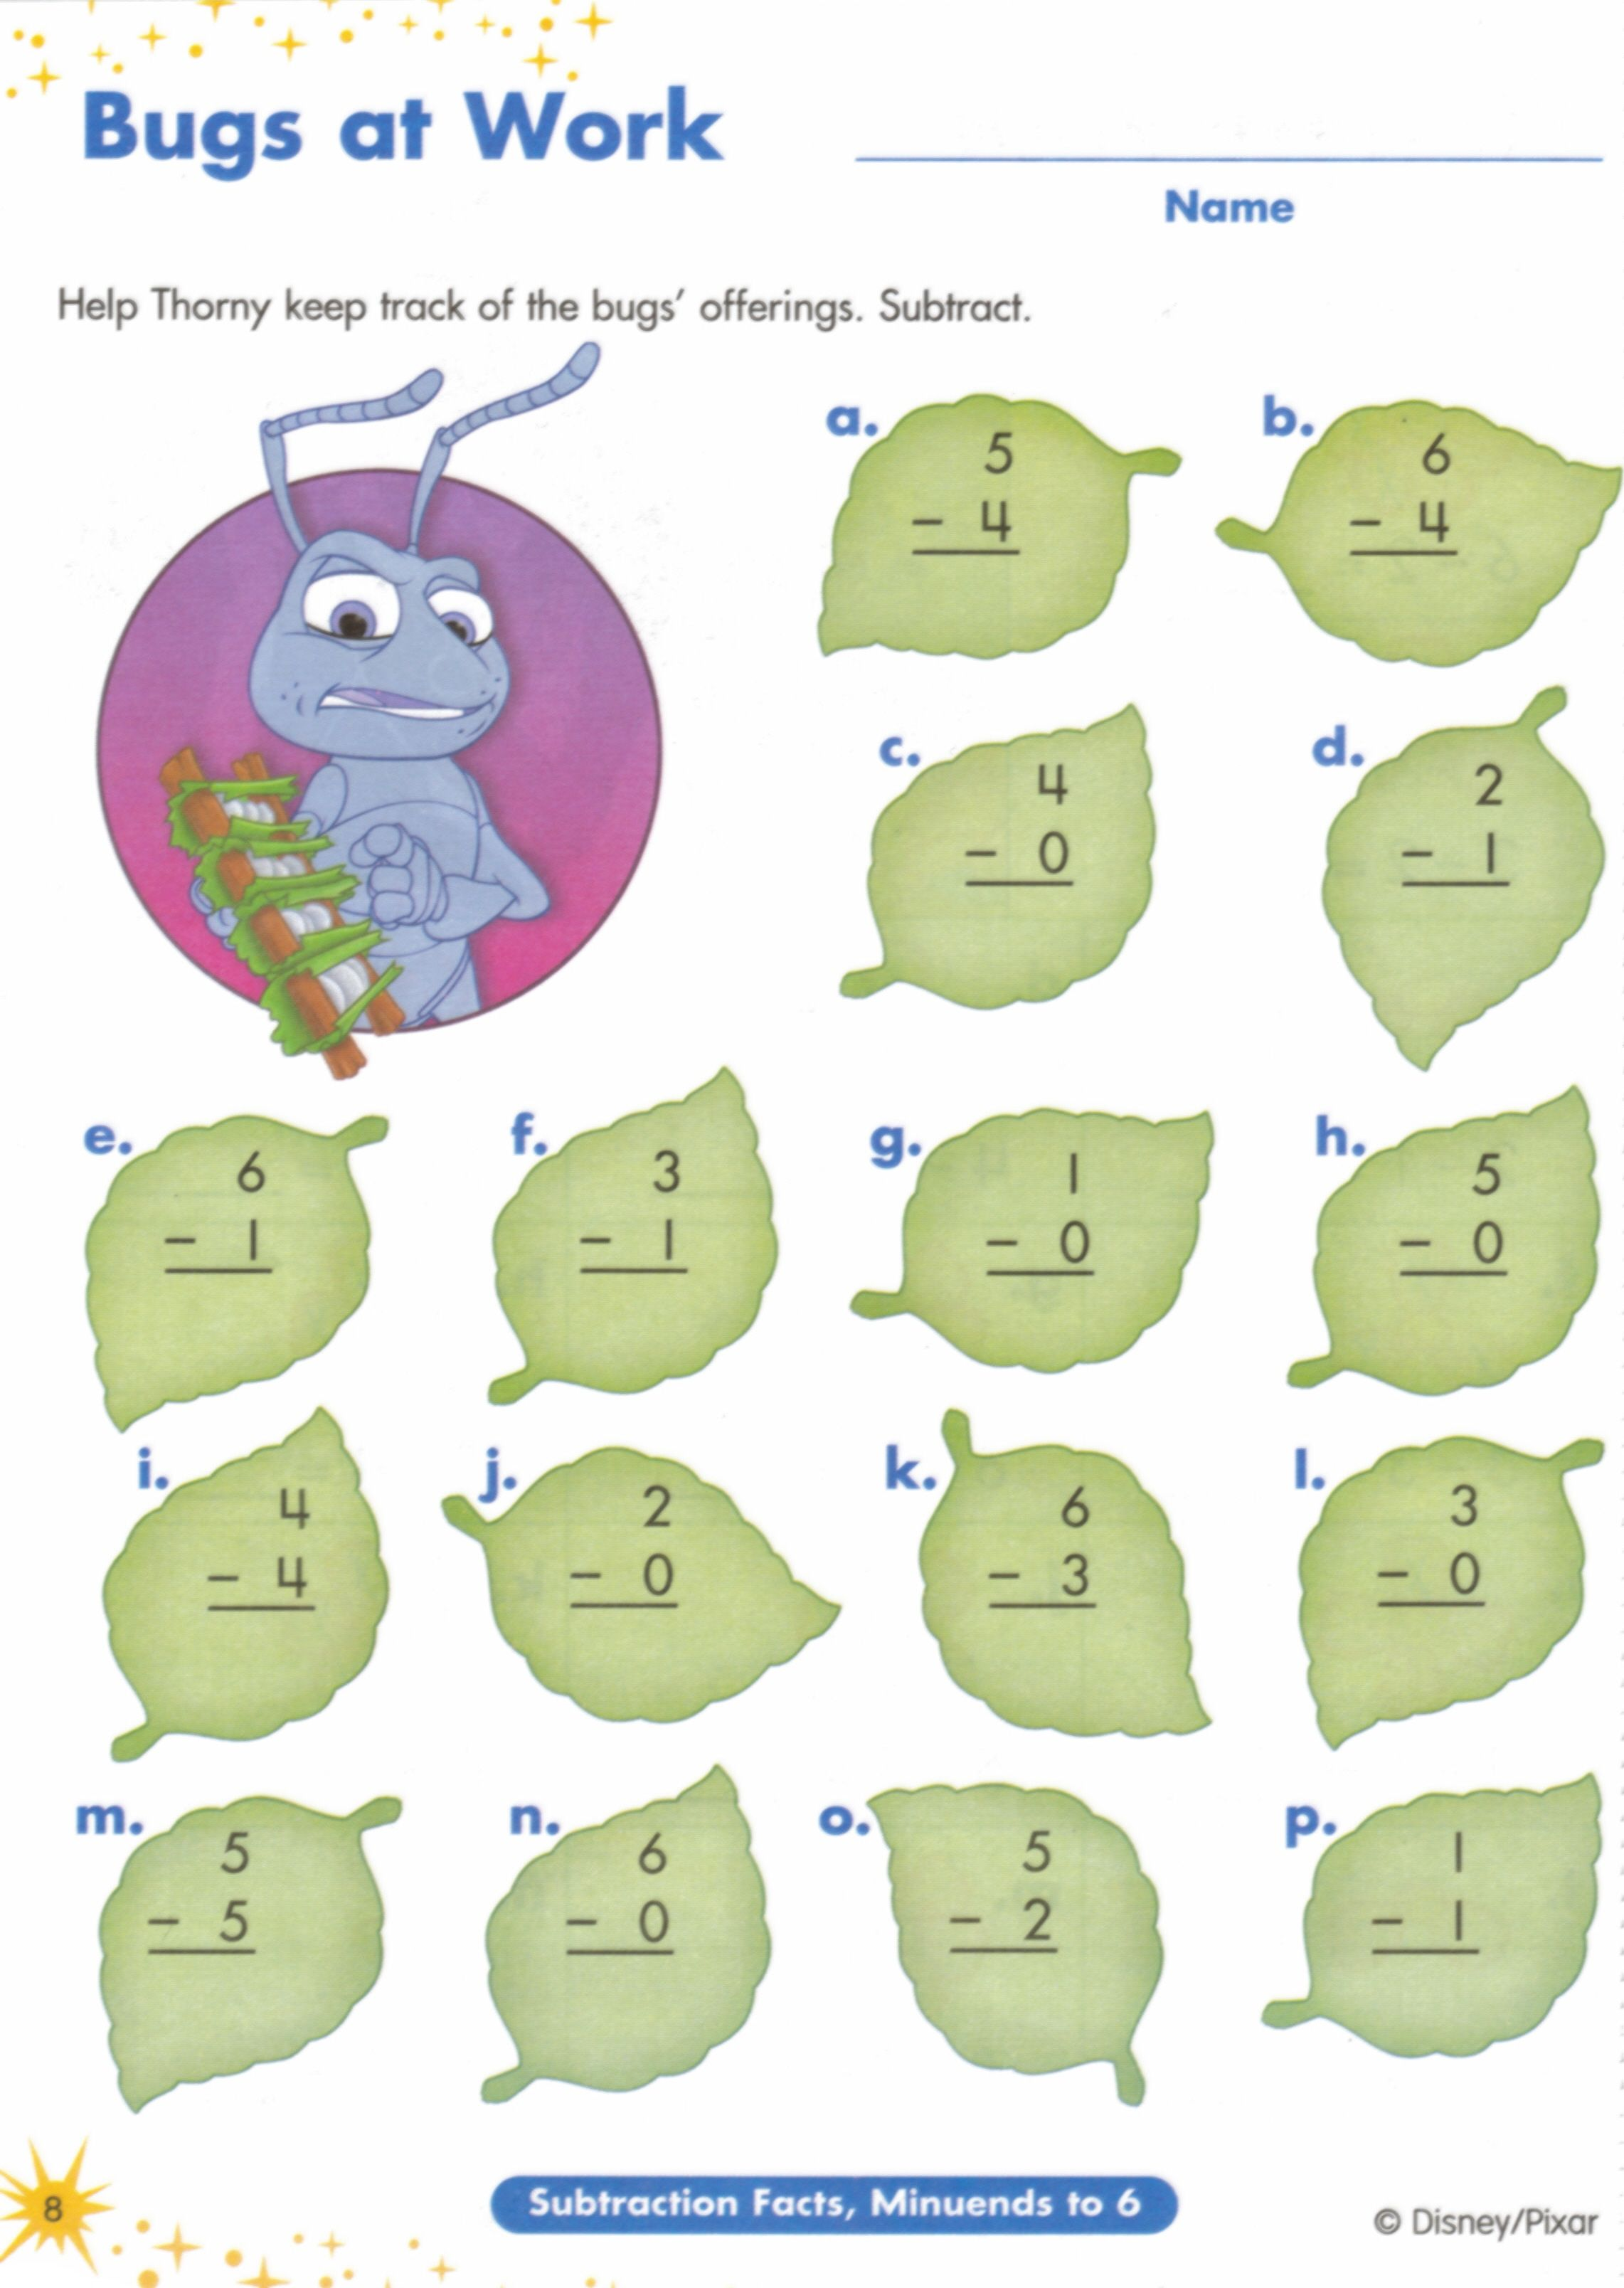 Weirdmailus  Pretty  Images About Worksheets On Pinterest  Fun Facts For Kids  With Entrancing  Images About Worksheets On Pinterest  Fun Facts For Kids Earth Day Worksheets And Jungles With Delectable Picture Spelling Worksheets Also Identifying D Shapes Worksheet In Addition Free Printing Worksheets For Kindergarten And Following Multi Step Directions Worksheets As Well As Living And Nonliving Things Worksheet For Kindergarten Additionally Parts Of Speech Sentences Worksheets From Pinterestcom With Weirdmailus  Entrancing  Images About Worksheets On Pinterest  Fun Facts For Kids  With Delectable  Images About Worksheets On Pinterest  Fun Facts For Kids Earth Day Worksheets And Jungles And Pretty Picture Spelling Worksheets Also Identifying D Shapes Worksheet In Addition Free Printing Worksheets For Kindergarten From Pinterestcom